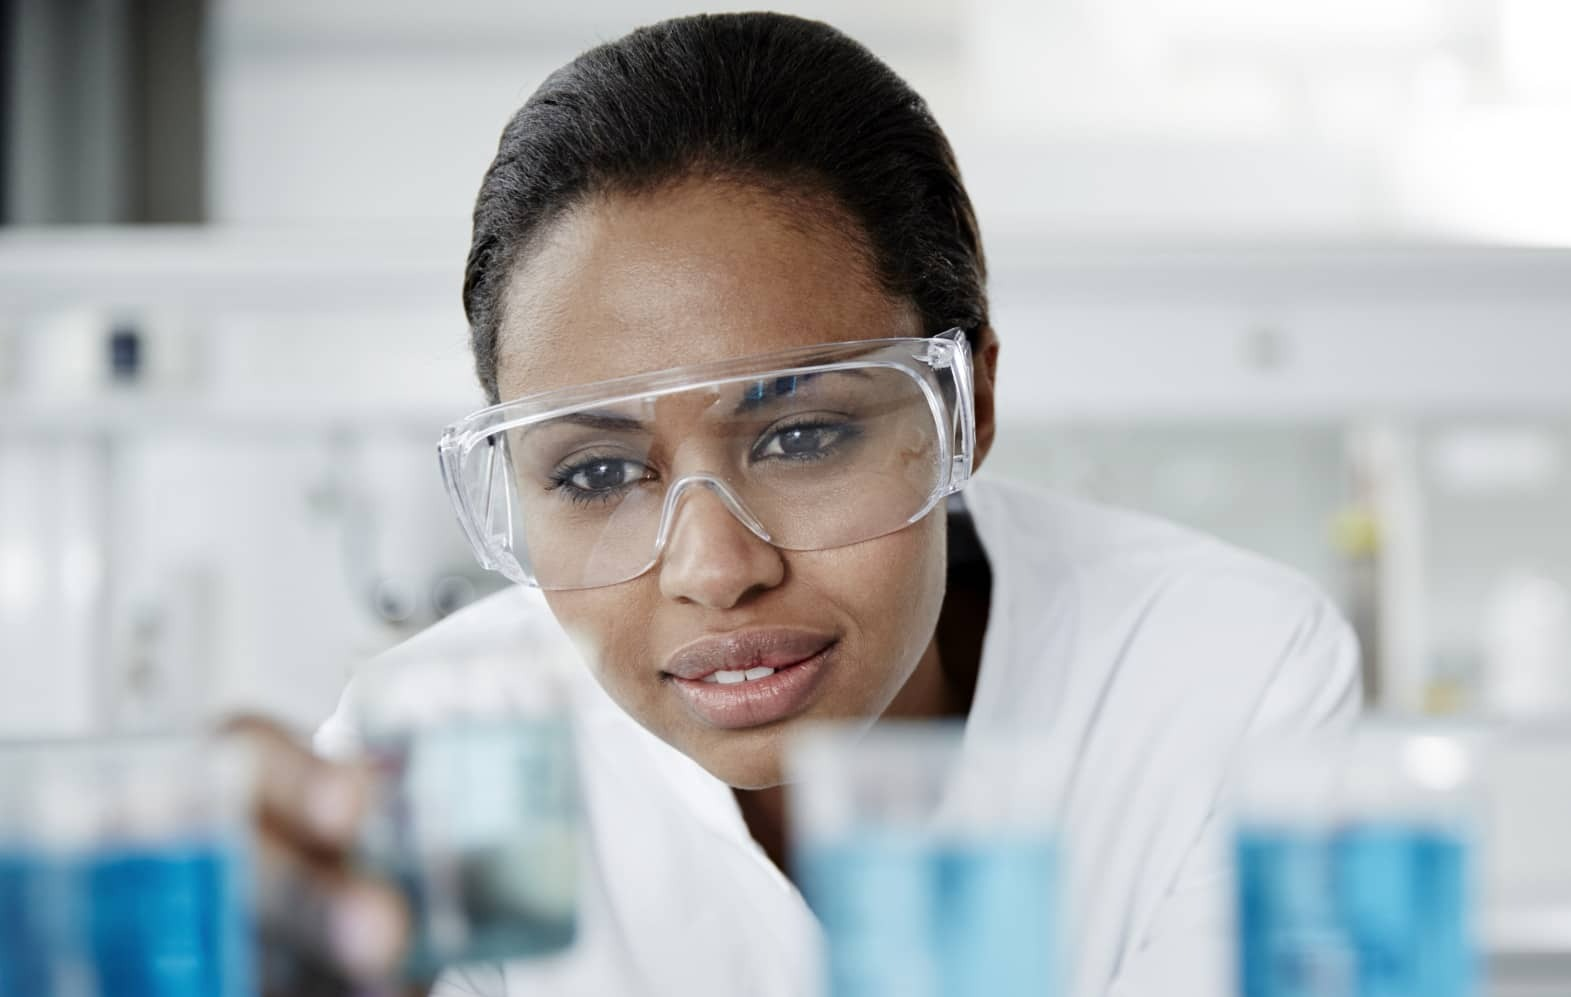 black-women-science_edited